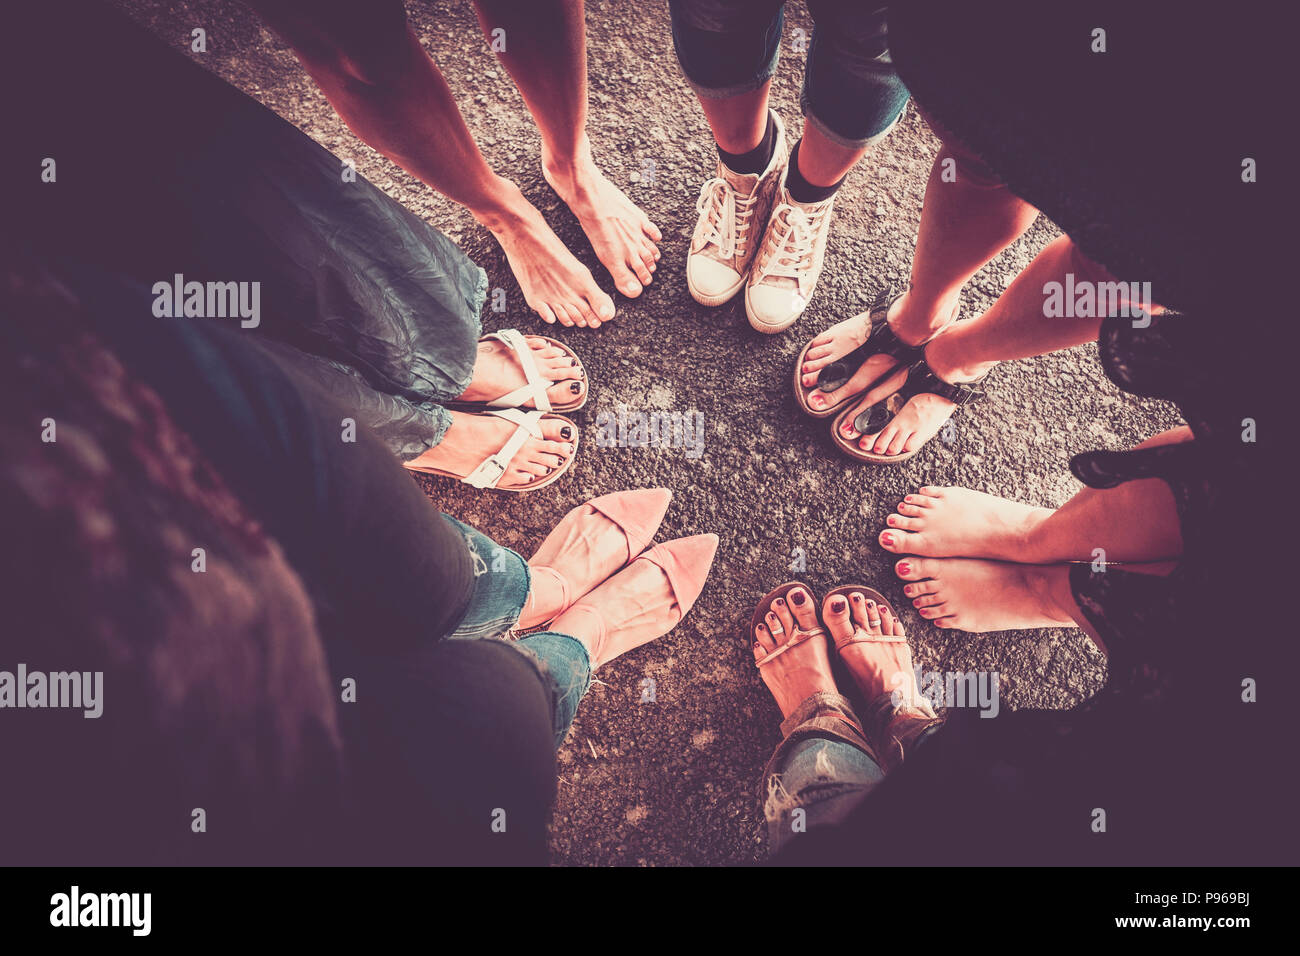 group of woman from high point of view with seven pair of feet with shoes and barefoot without. caucasian ladies in summer time. vintage colors and vi - Stock Image